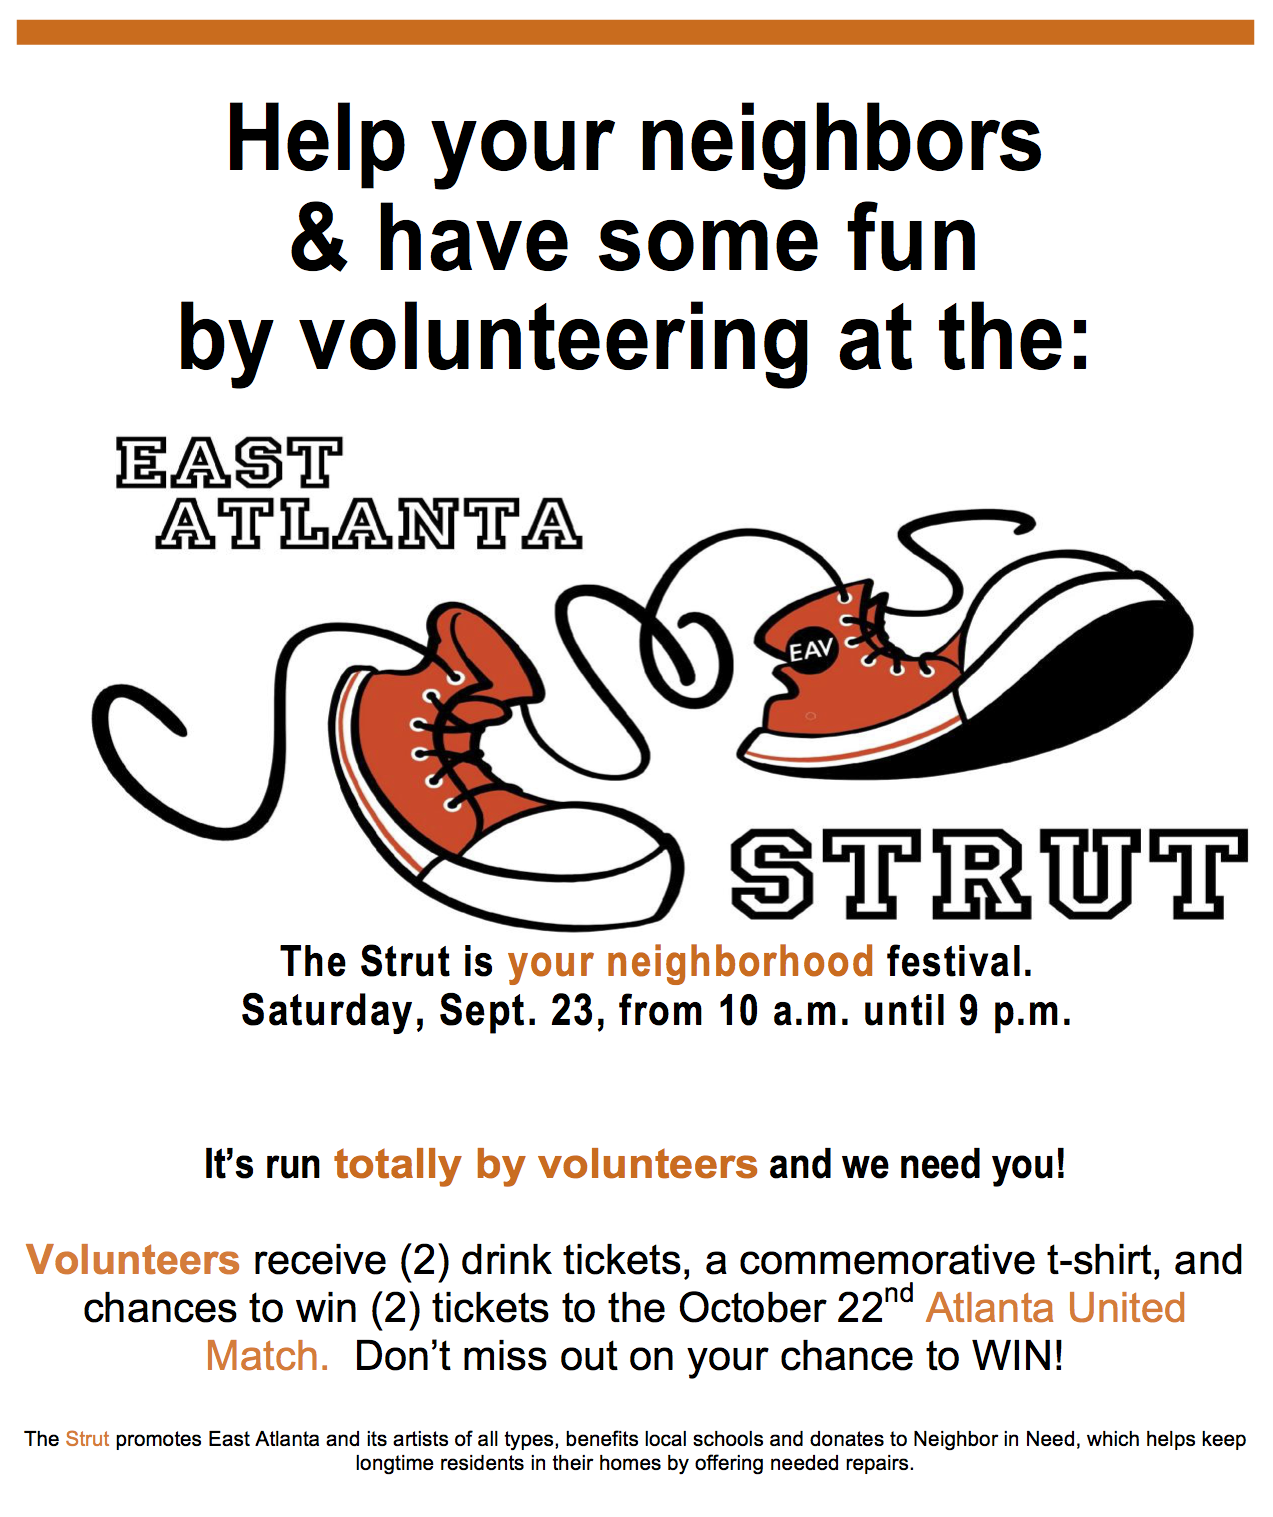 VolunteeratStrut.png